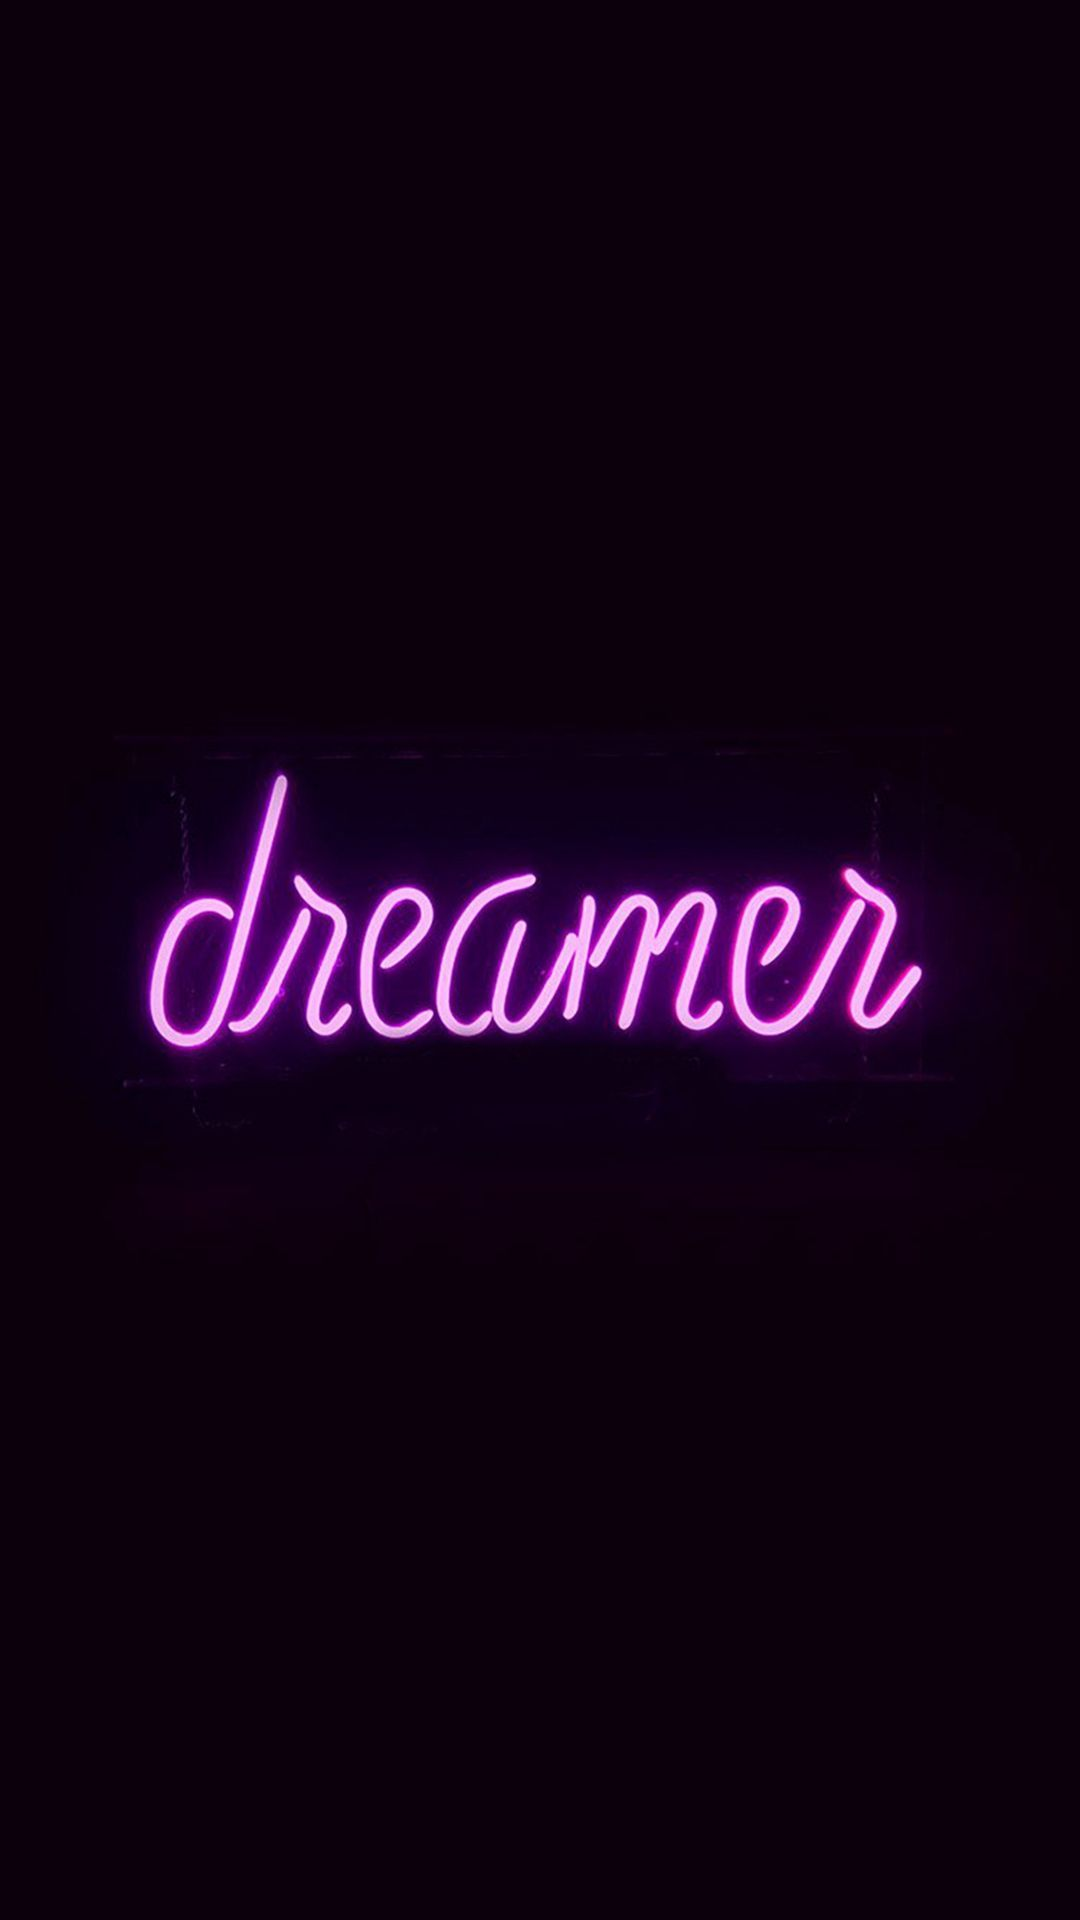 Dreamers Neon Sign Dark Illustration Art Purple Iphone 6